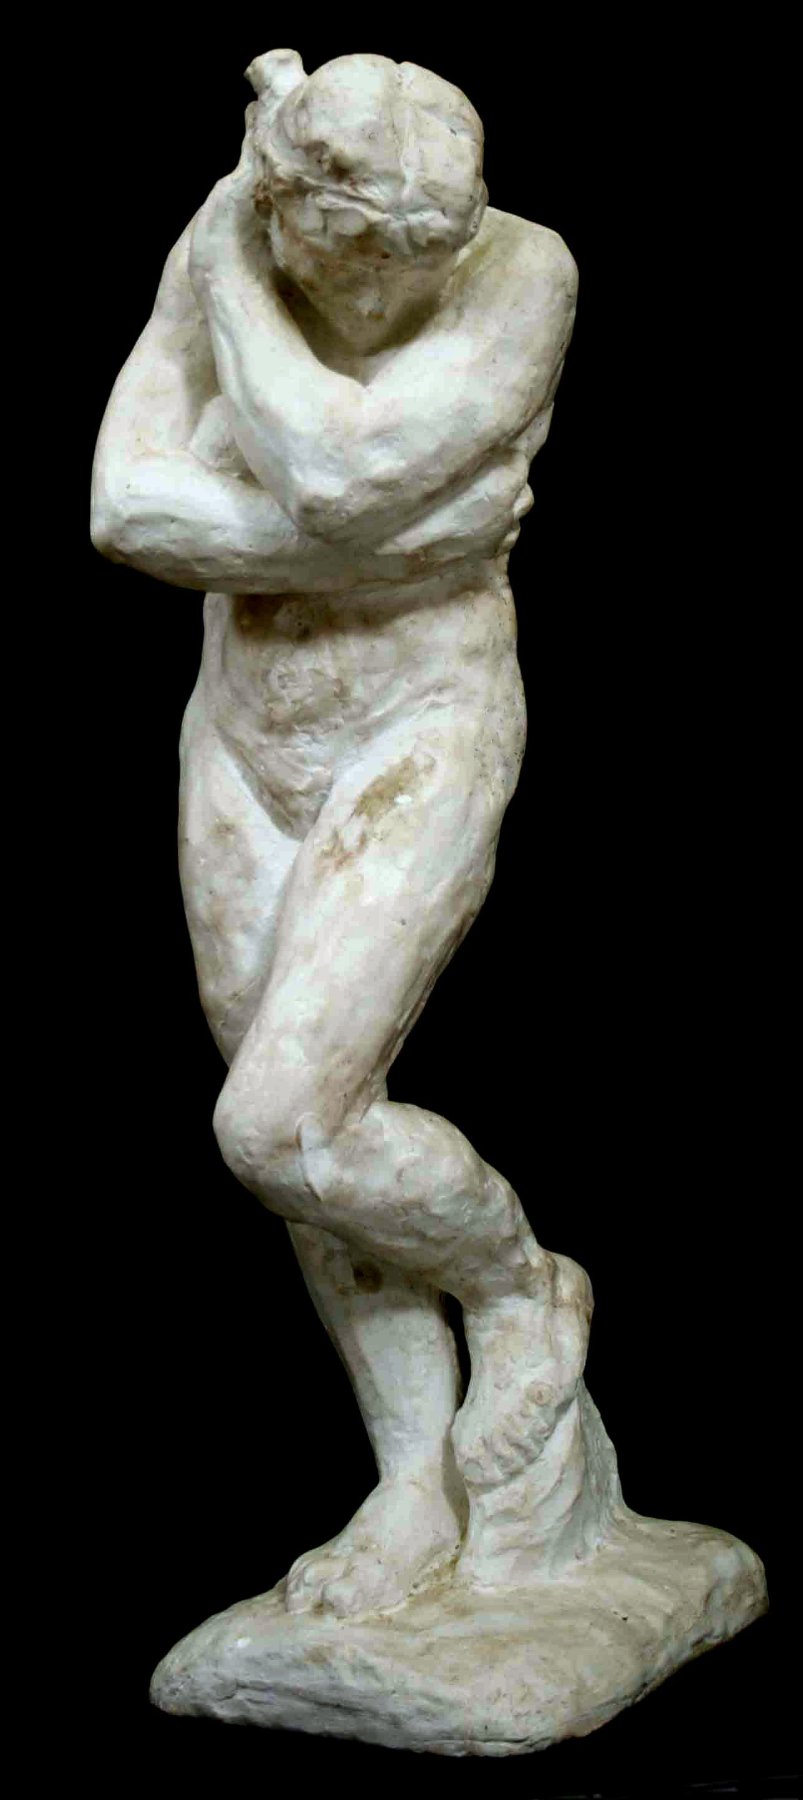 Eve by Rodin - Item #811